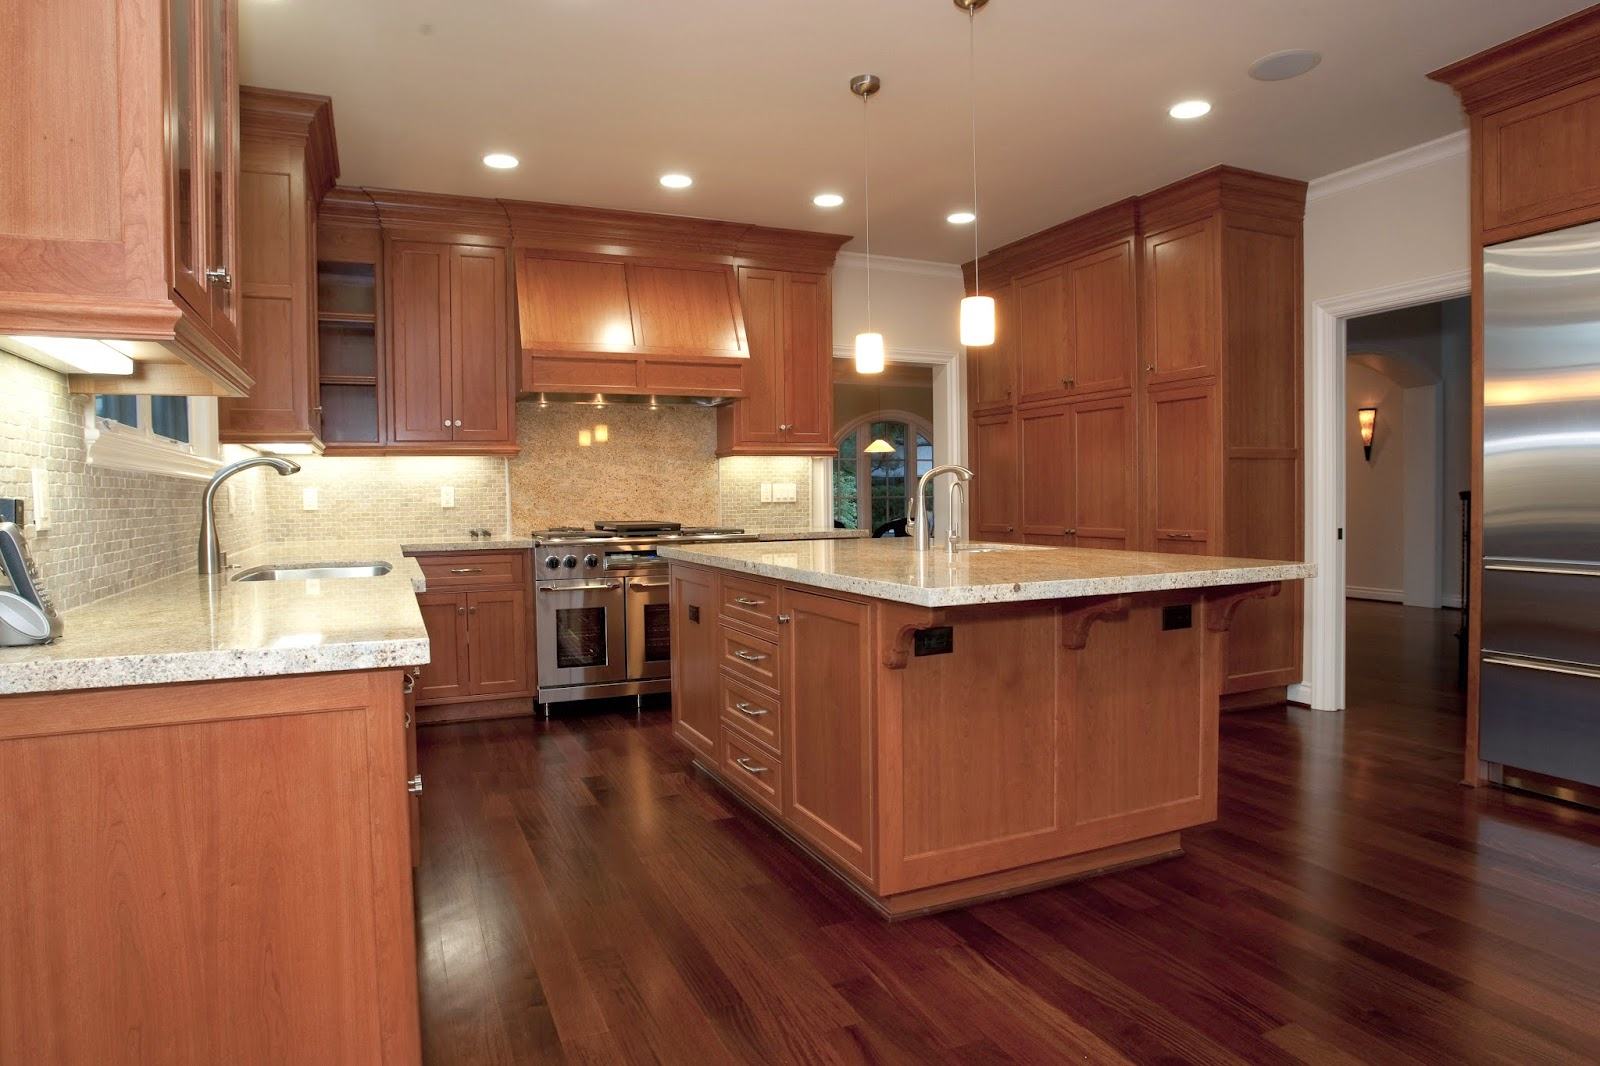 Uncategorized Brazilian Cherry Cabinets coloring your world how to coordinate hardwood flooring cabinetry cherry cabinets blend nicely with slighter darker floor